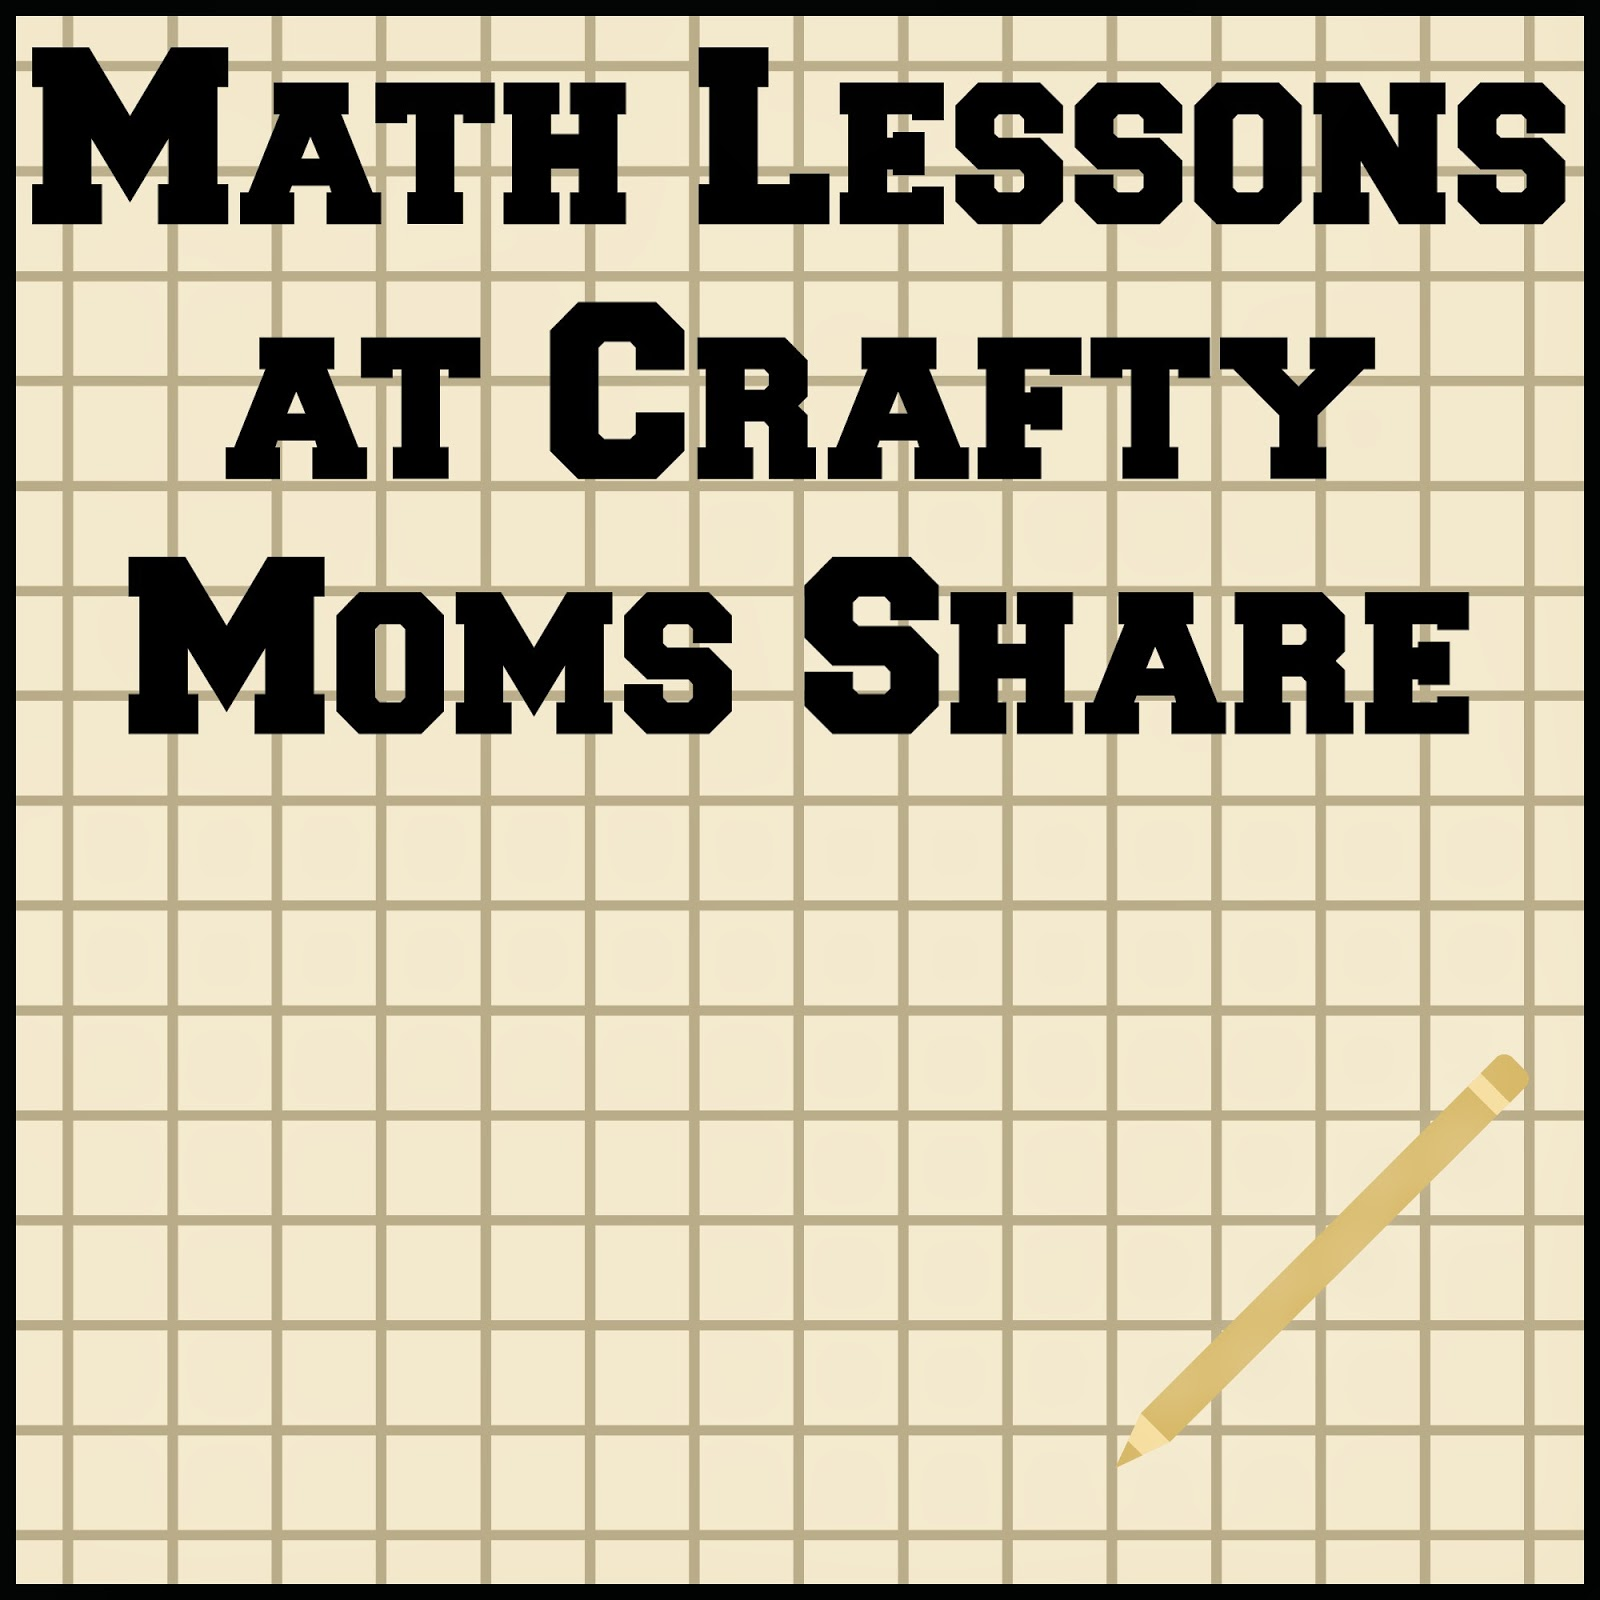 http://craftymomsshare.blogspot.com/search/label/math